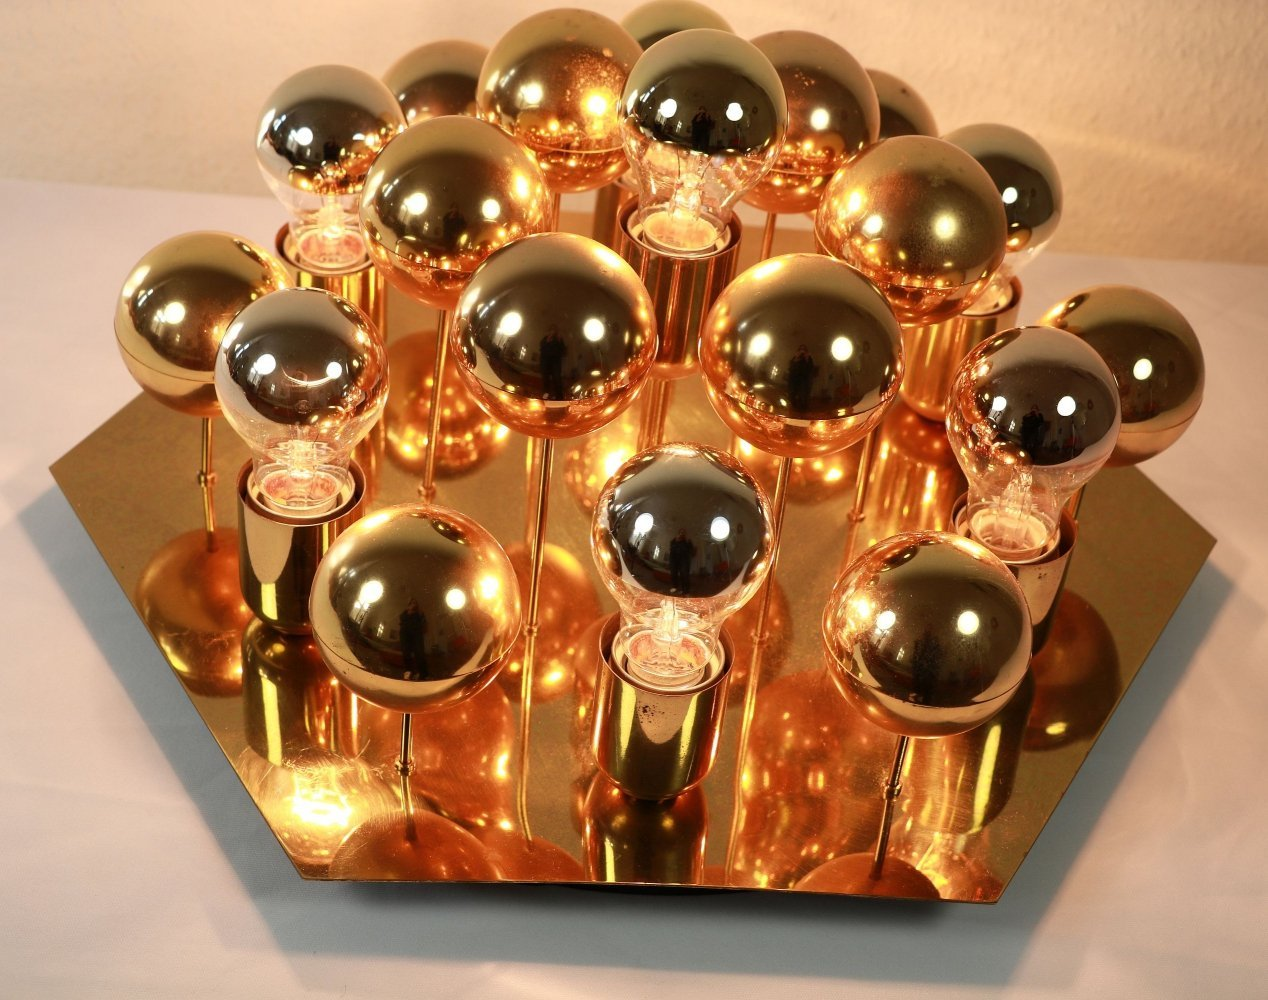 Rare Golden balls wall or ceiling Sputnik lamp by Cosack, 1970s